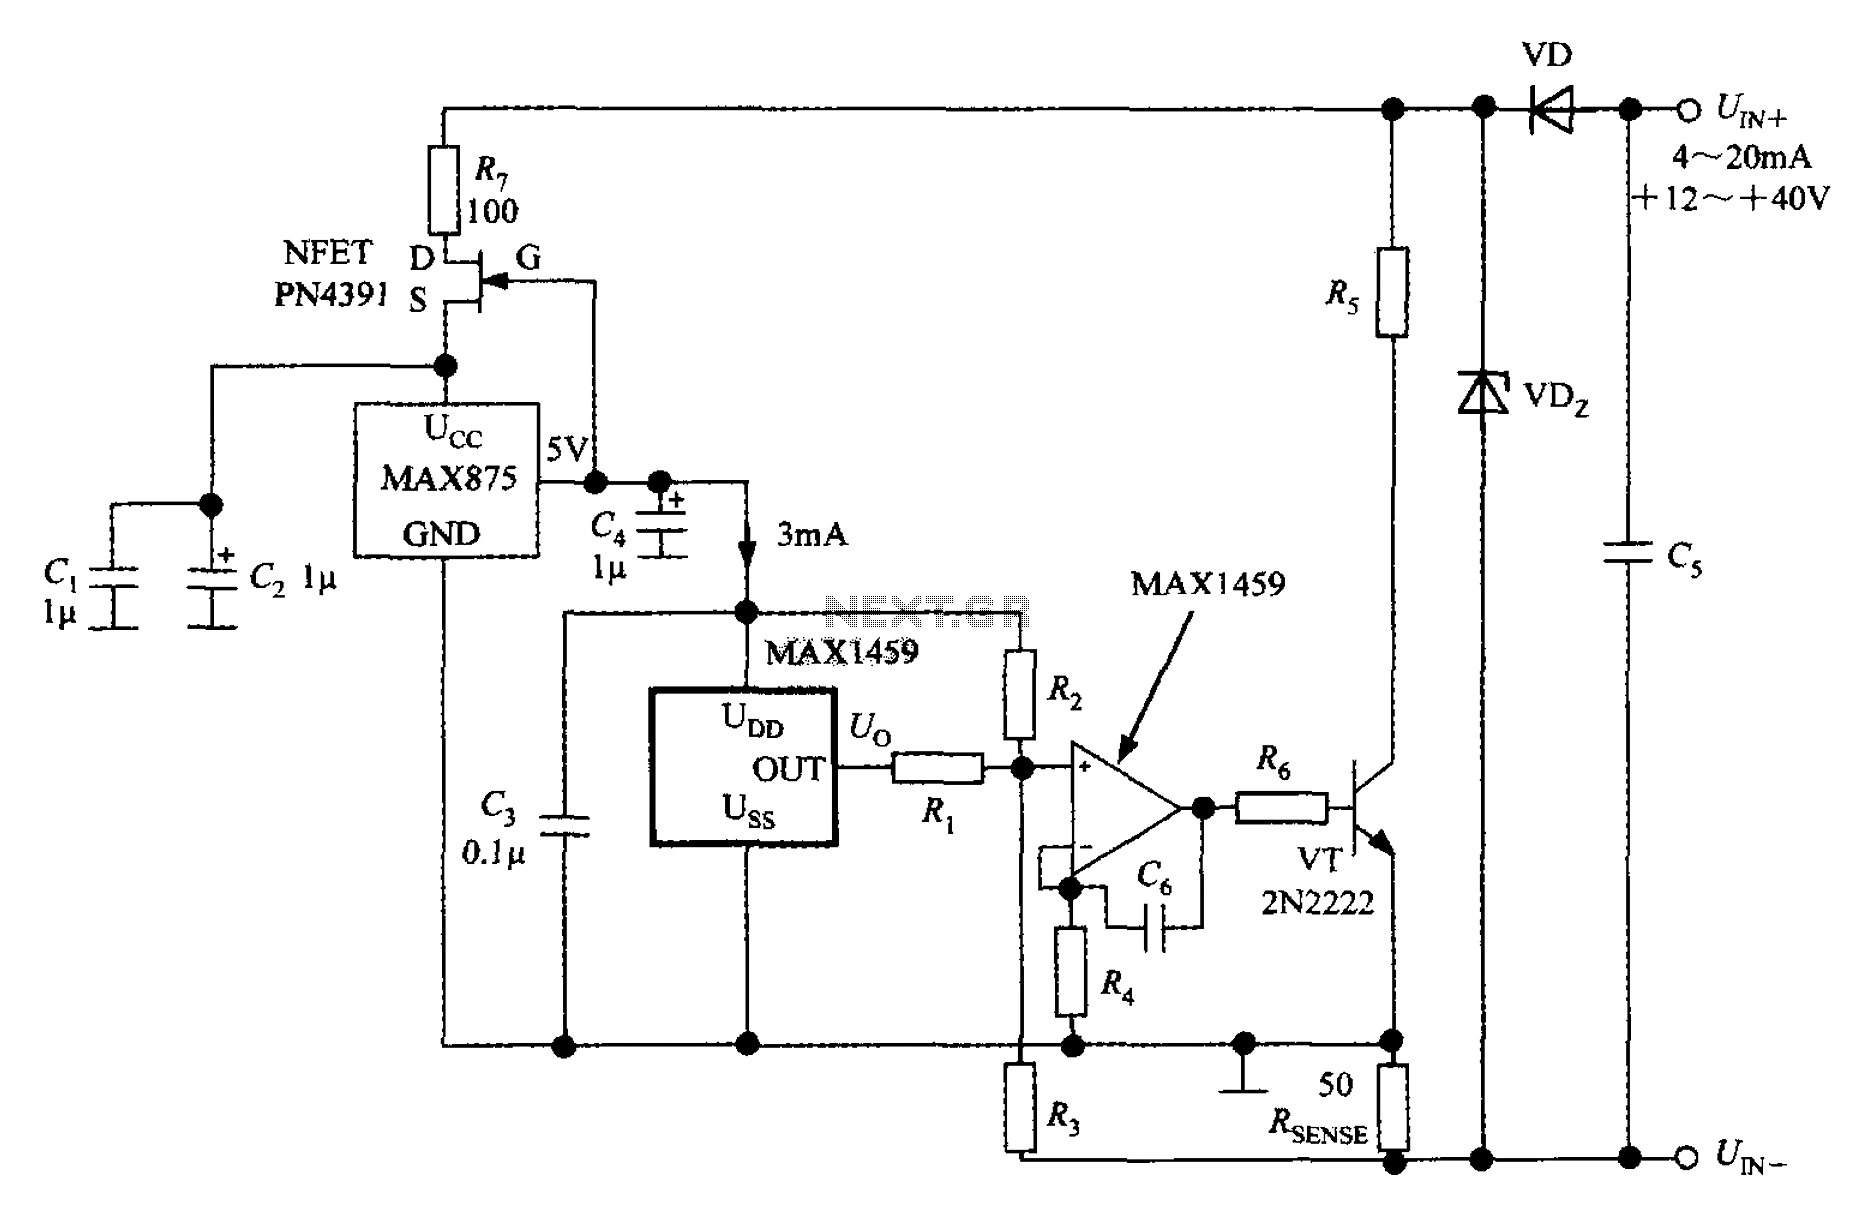 pressure transmitter wiring diagram ge wall oven a circuit of the digital signal